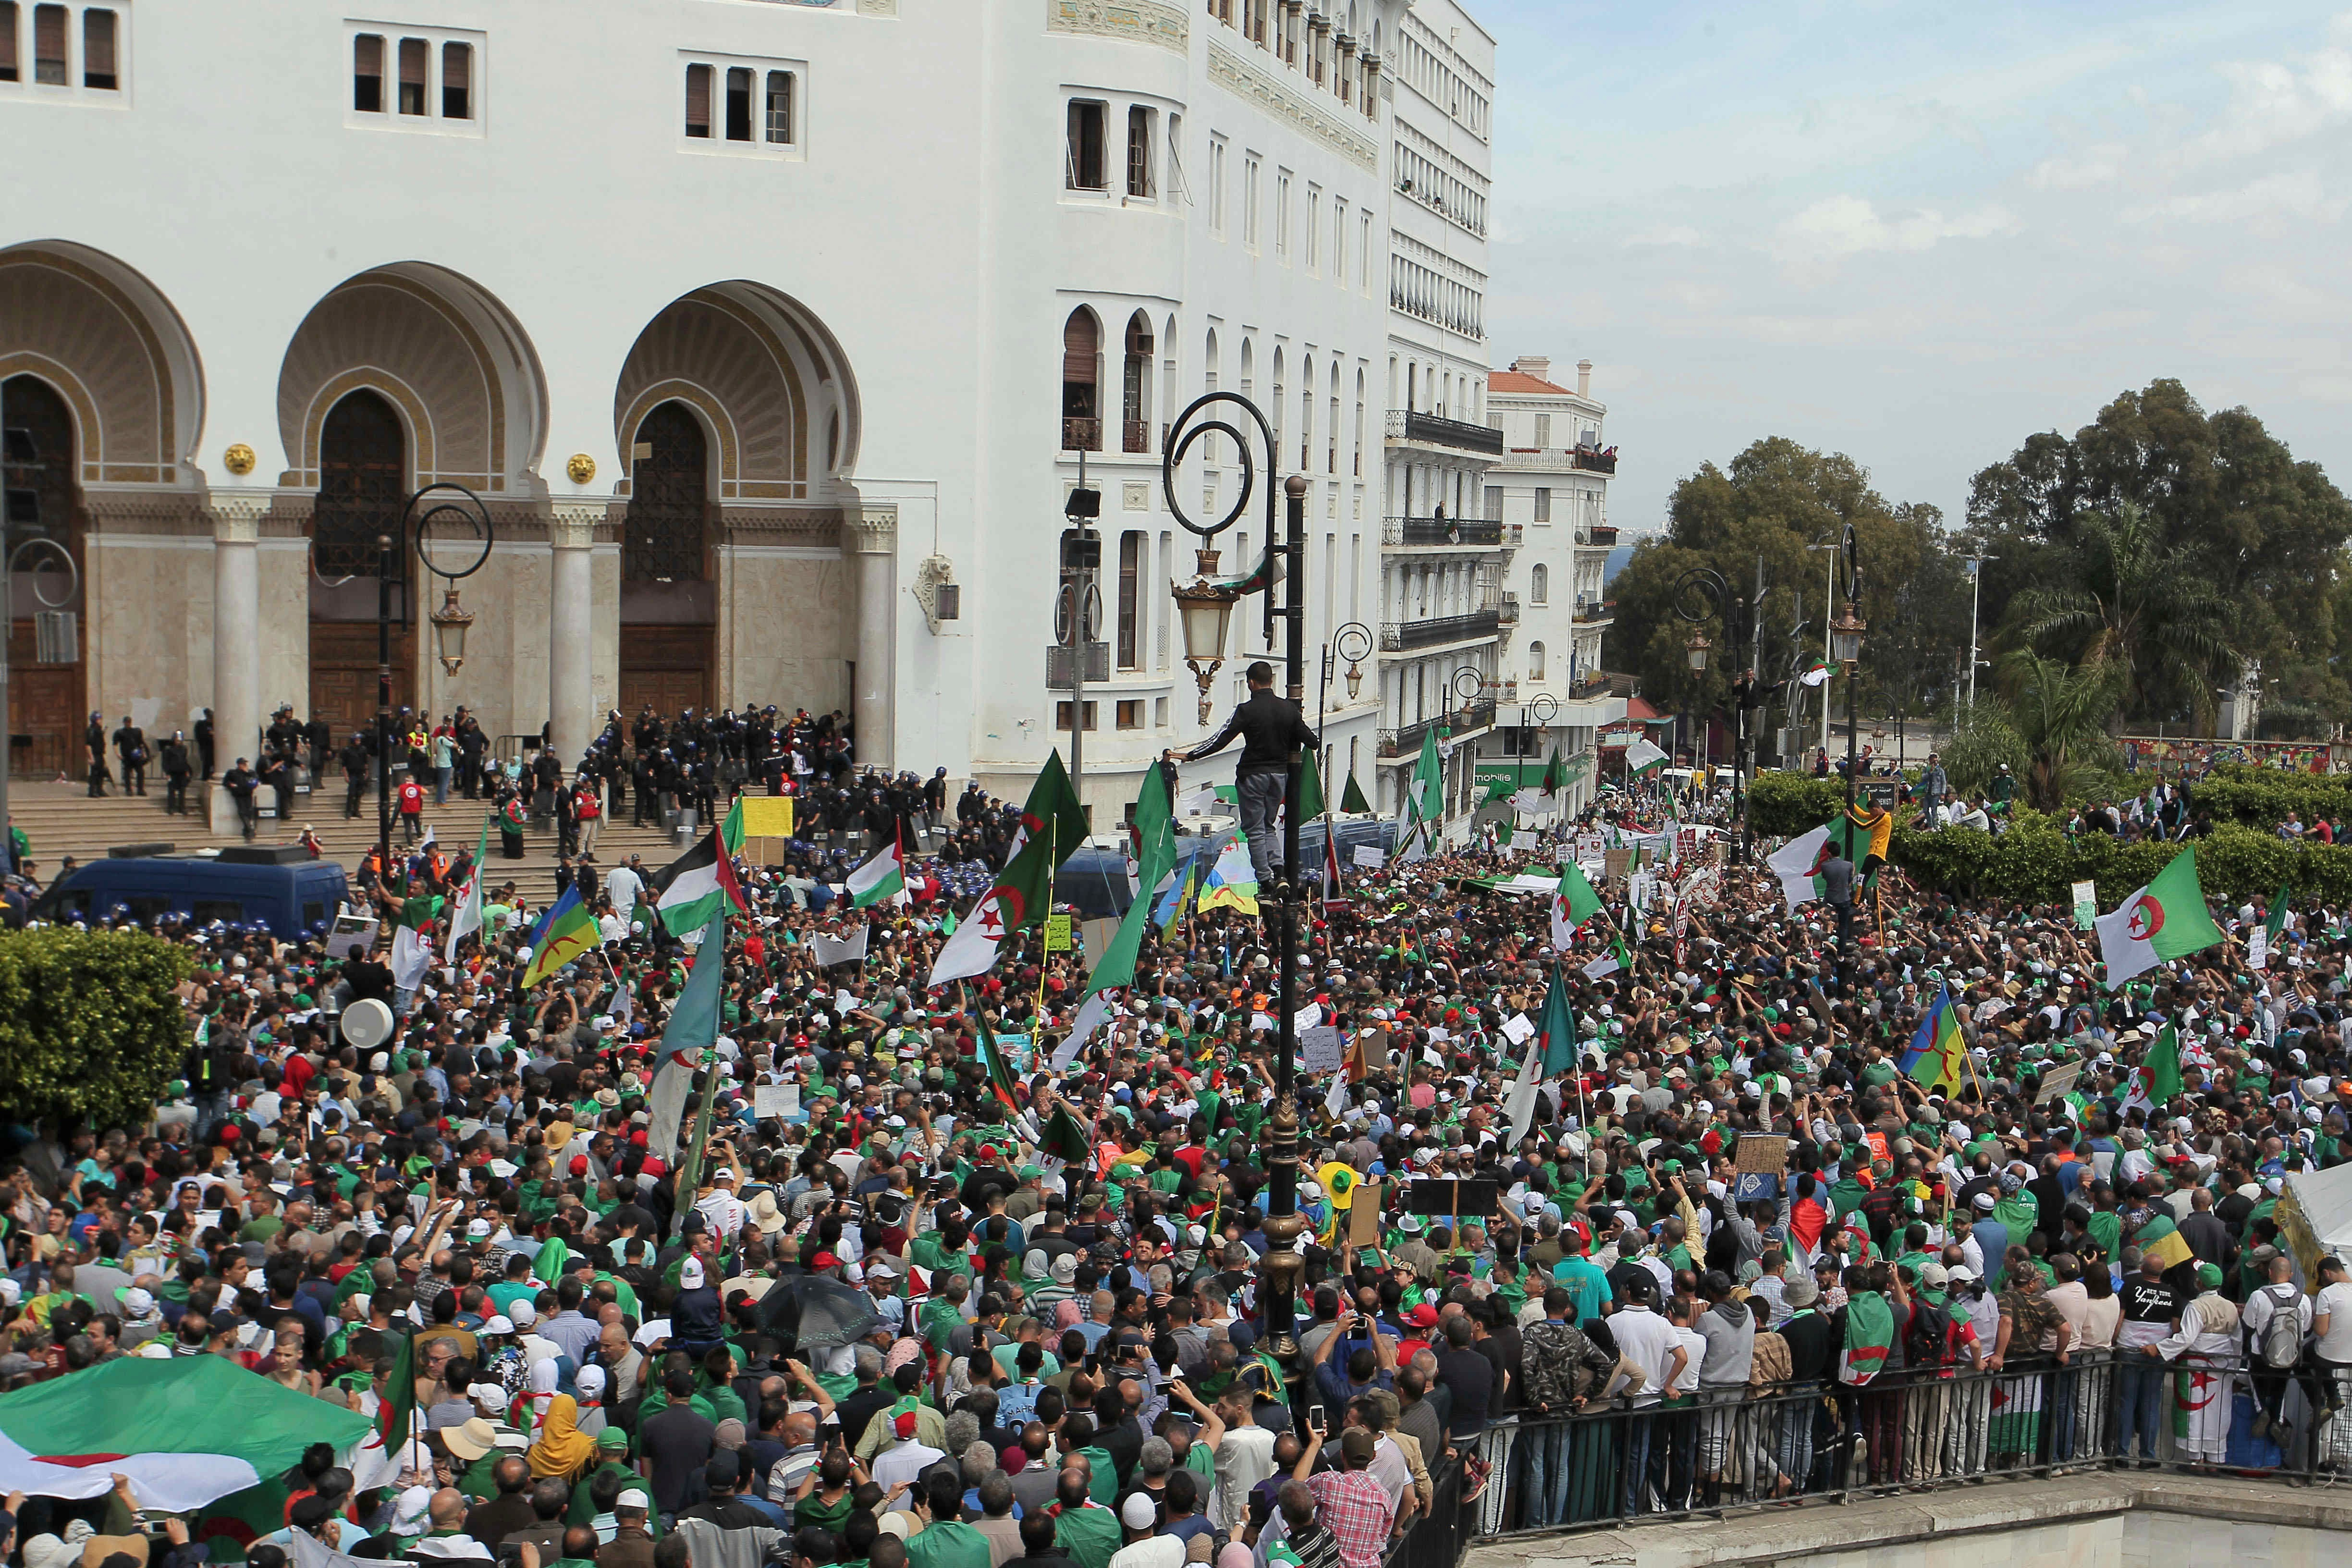 Algerian protesters gather during an anti-government demonstration outside La Grande Poste (main post office) in the centre of the capital Algiers, Friday, May 17, 2019.